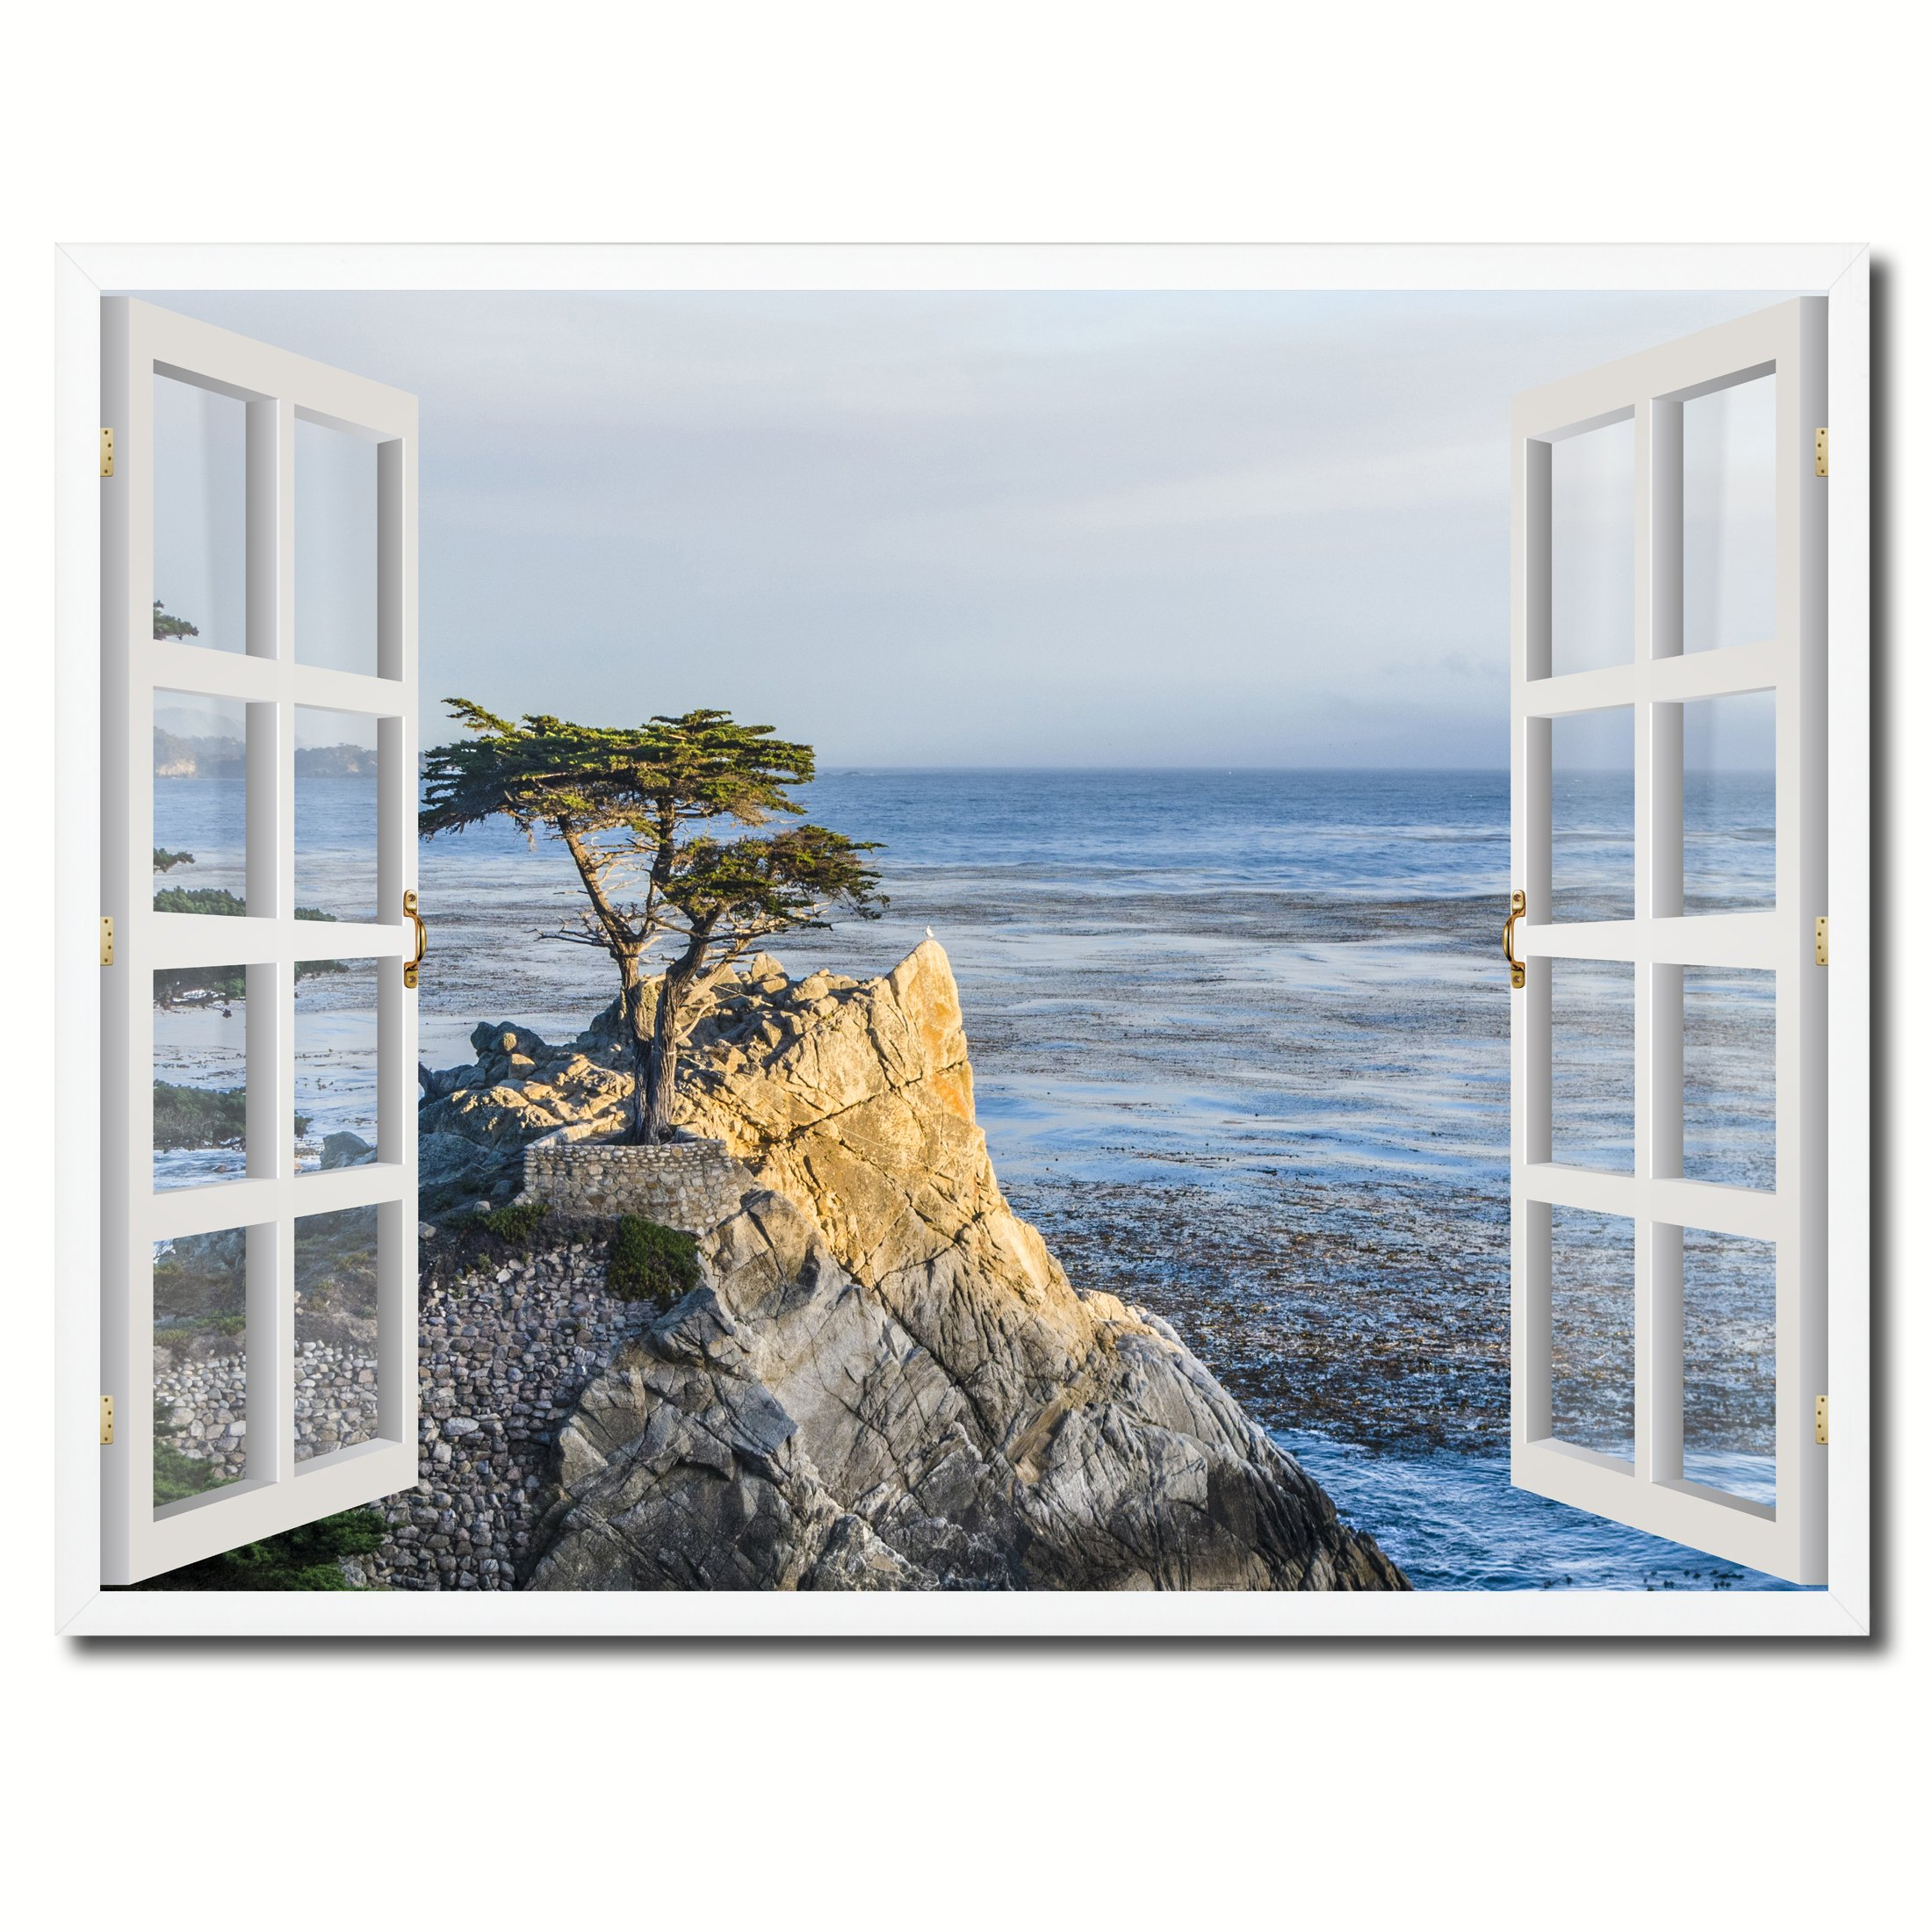 SpotColorArt FRENCHWINDOWH-23021W2229 Handcrafted Framed Canvas Print by SpotColorArt